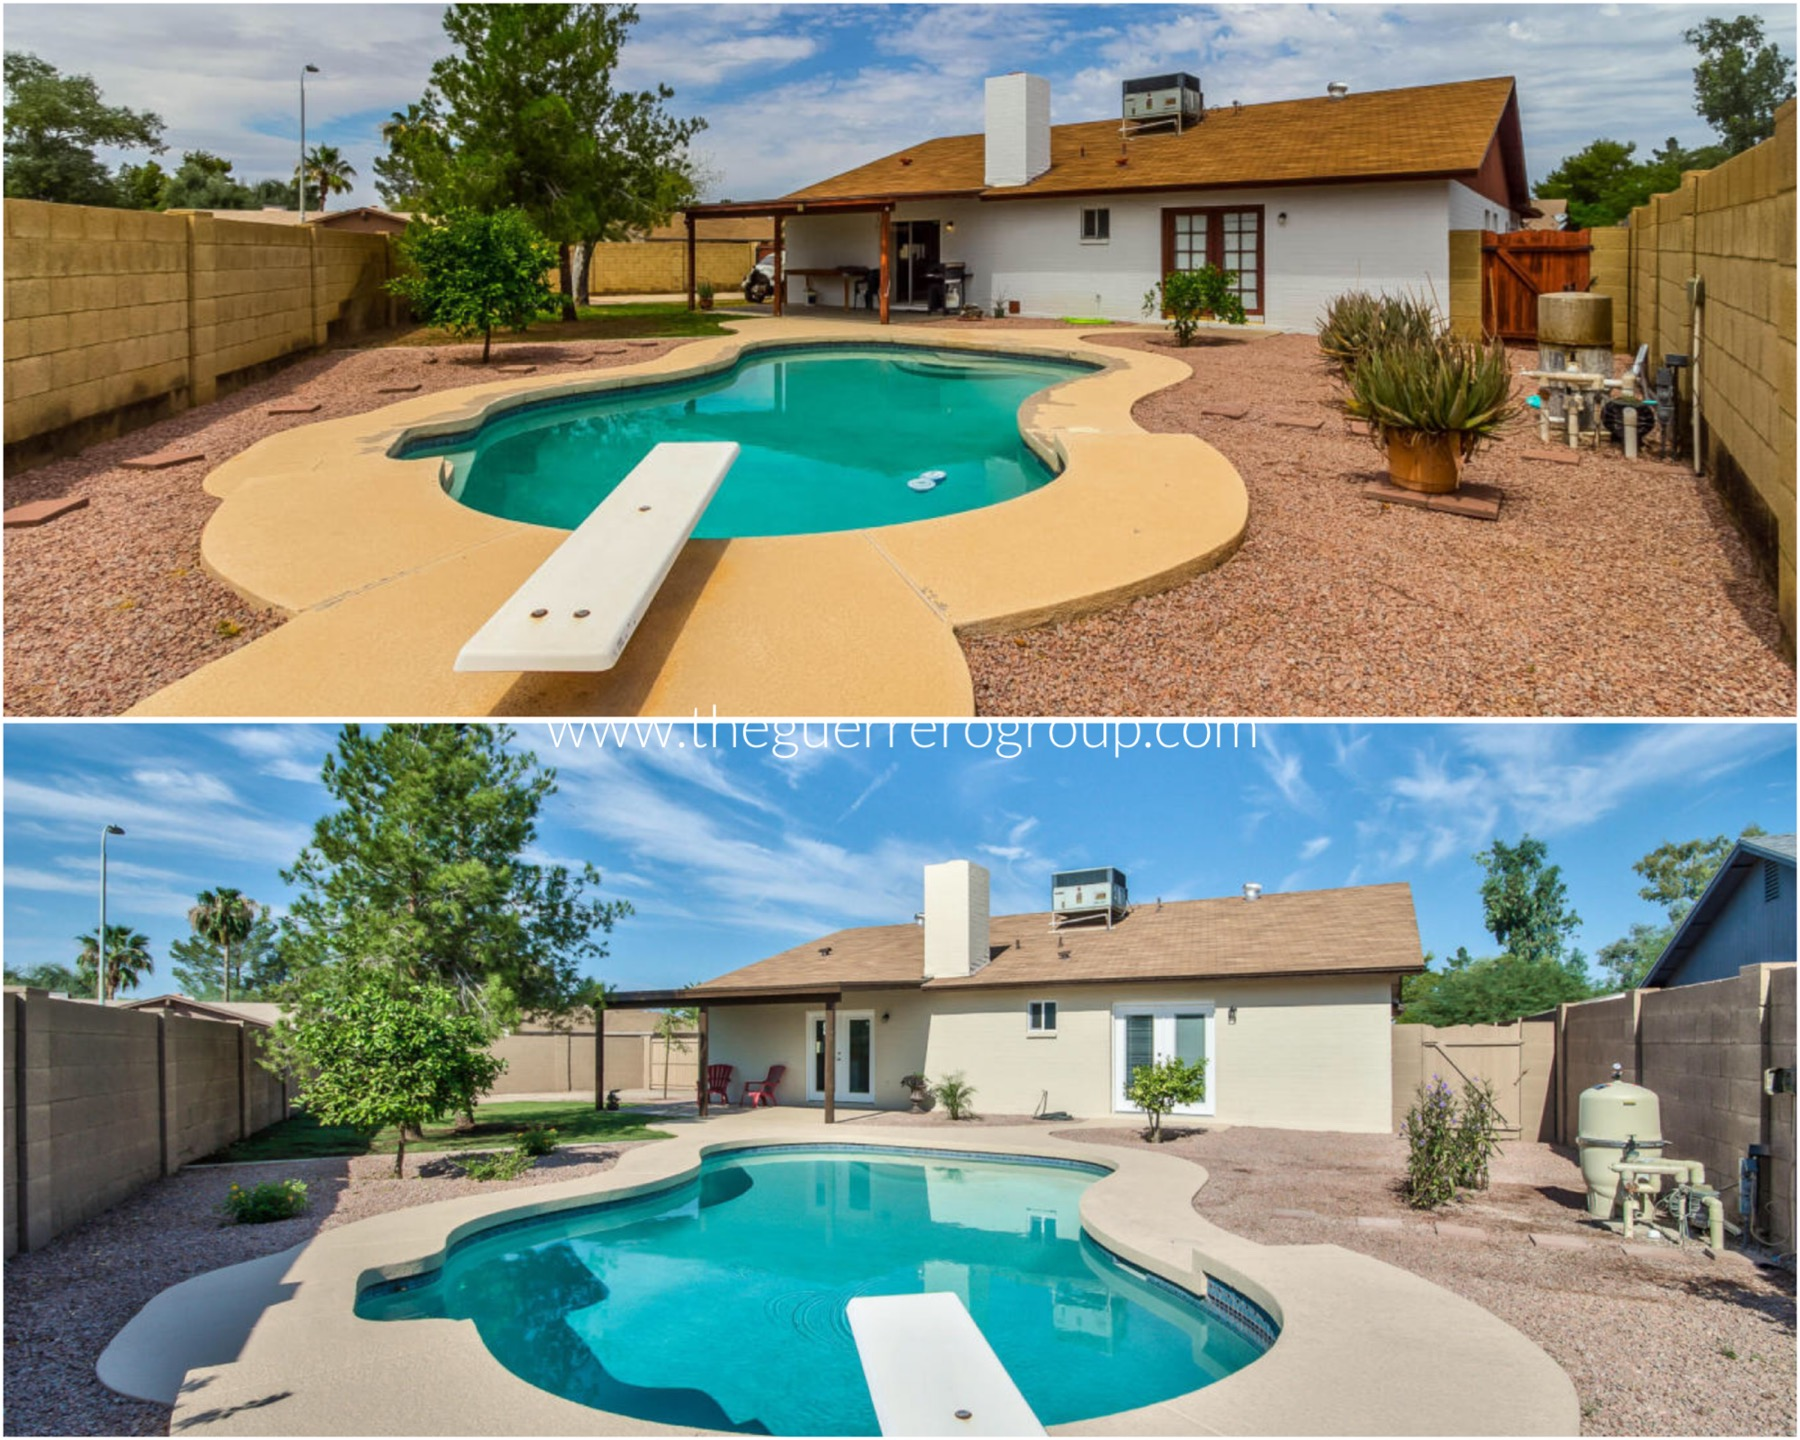 The Guerrero Group NEW Renovated Chandler Home for Sale with Diving Pool 85224